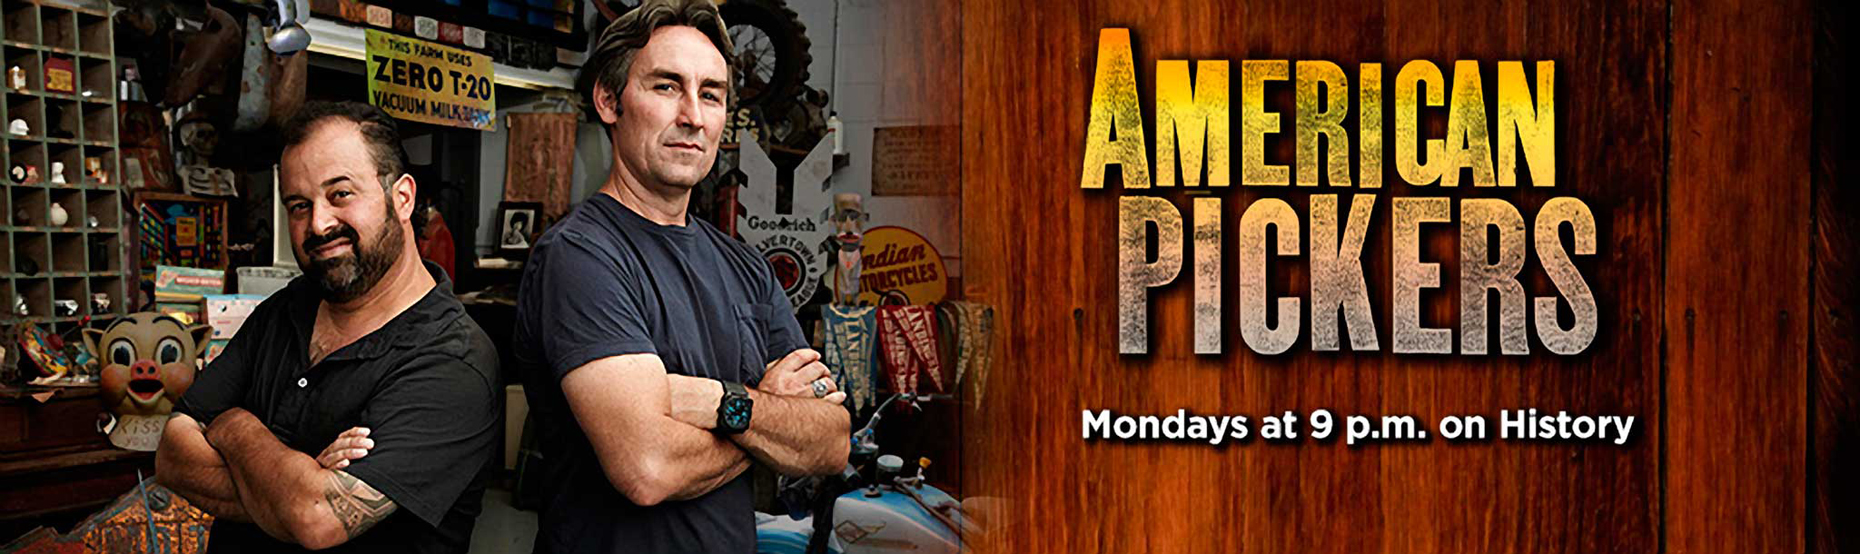 American_pickers_history_02